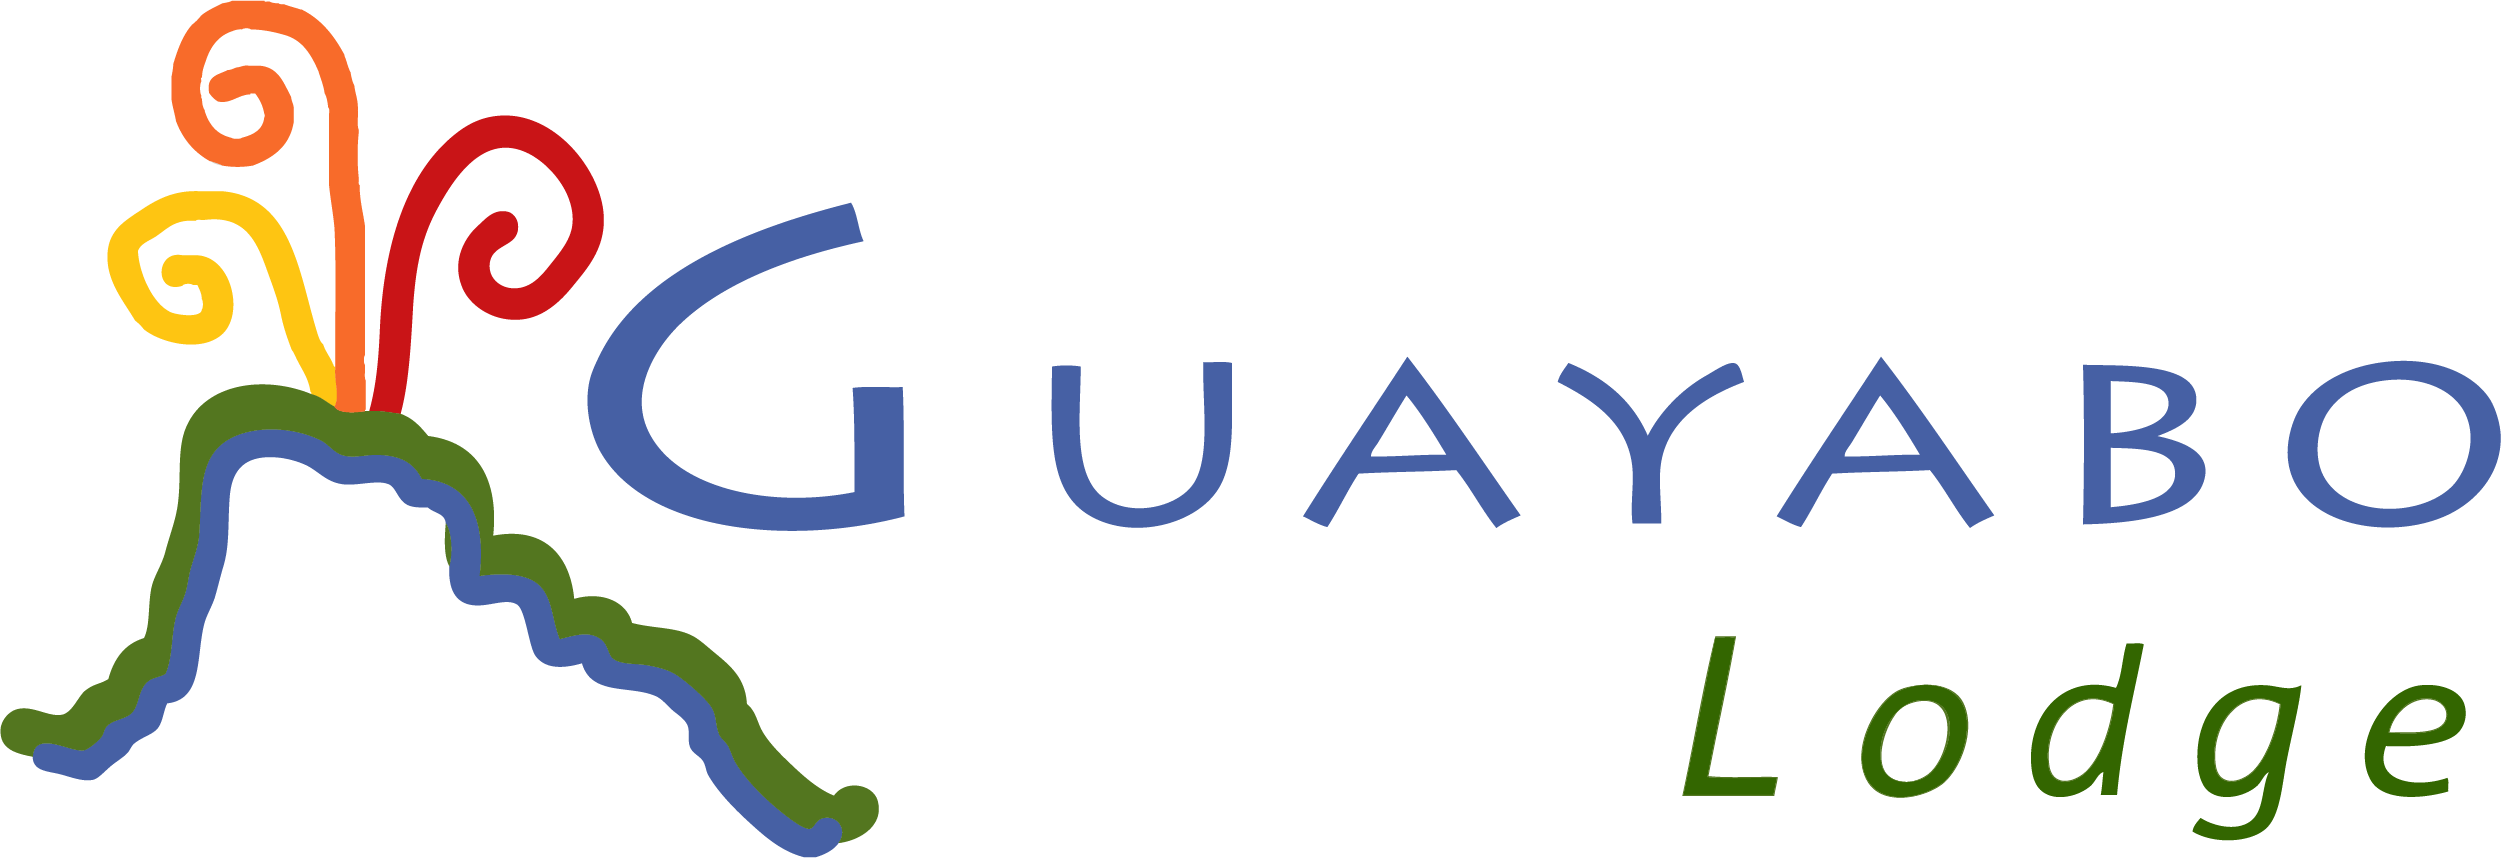 Guayabo Lodge hotel costa rica official logo 2020